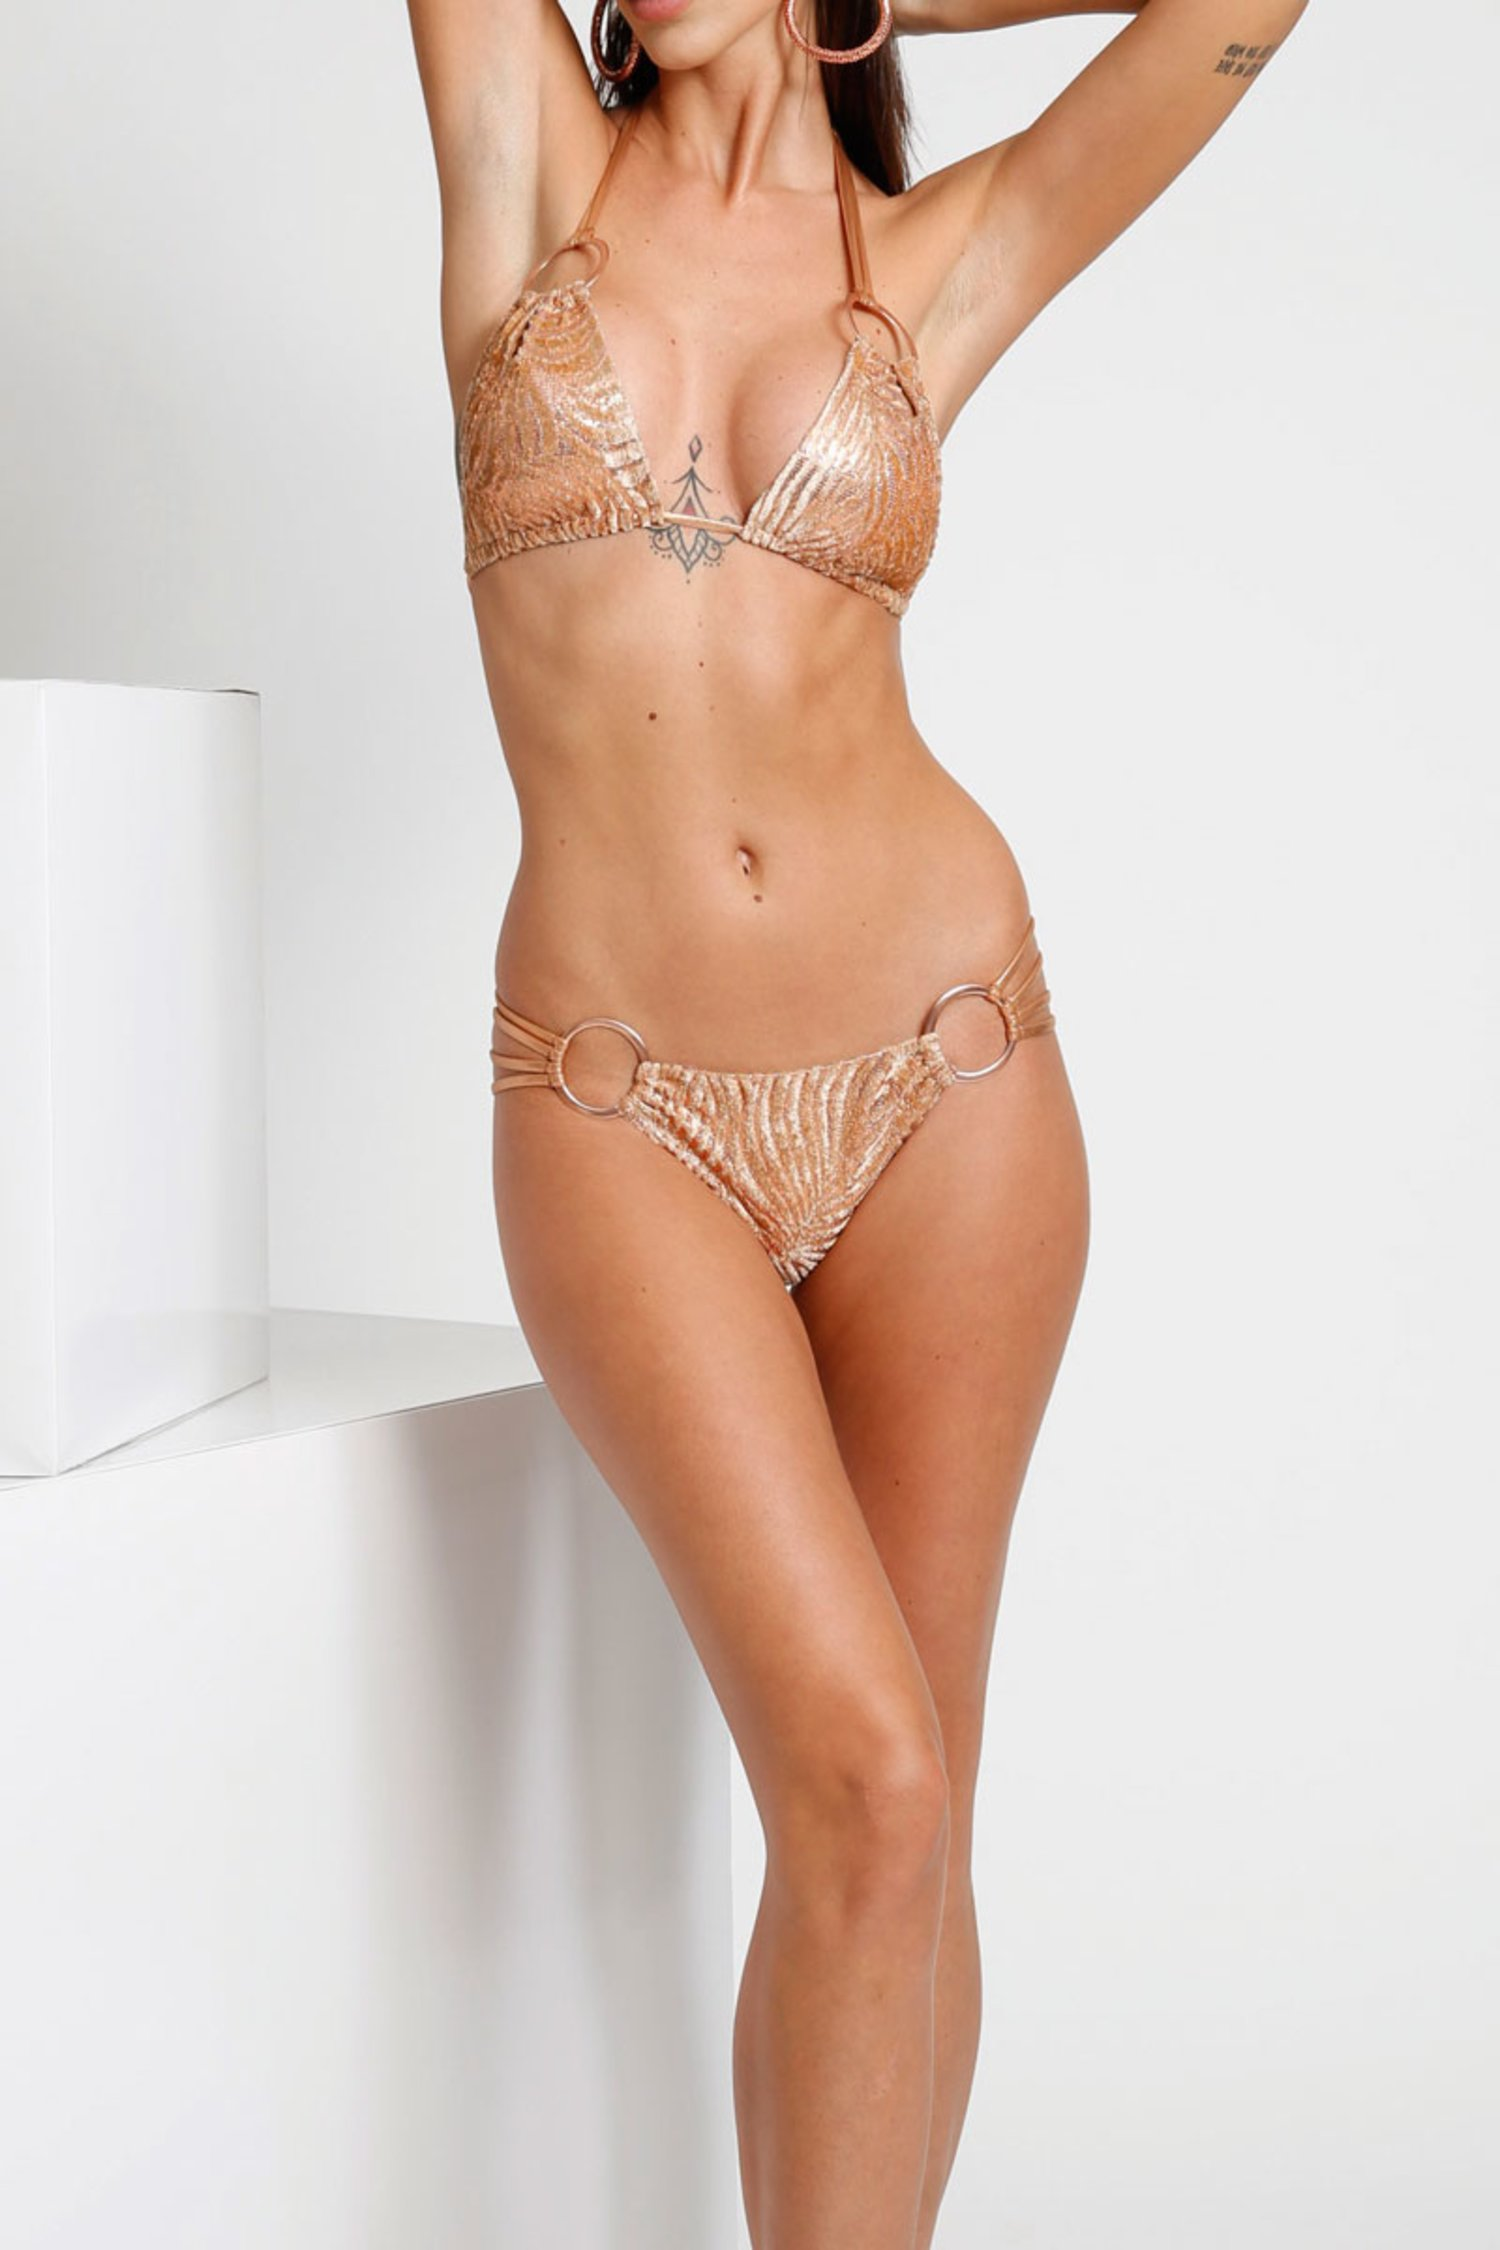 LUXE TRIANGLE BIKINI IN DEVORE' WITH METAL RINGS - Devore' Rame